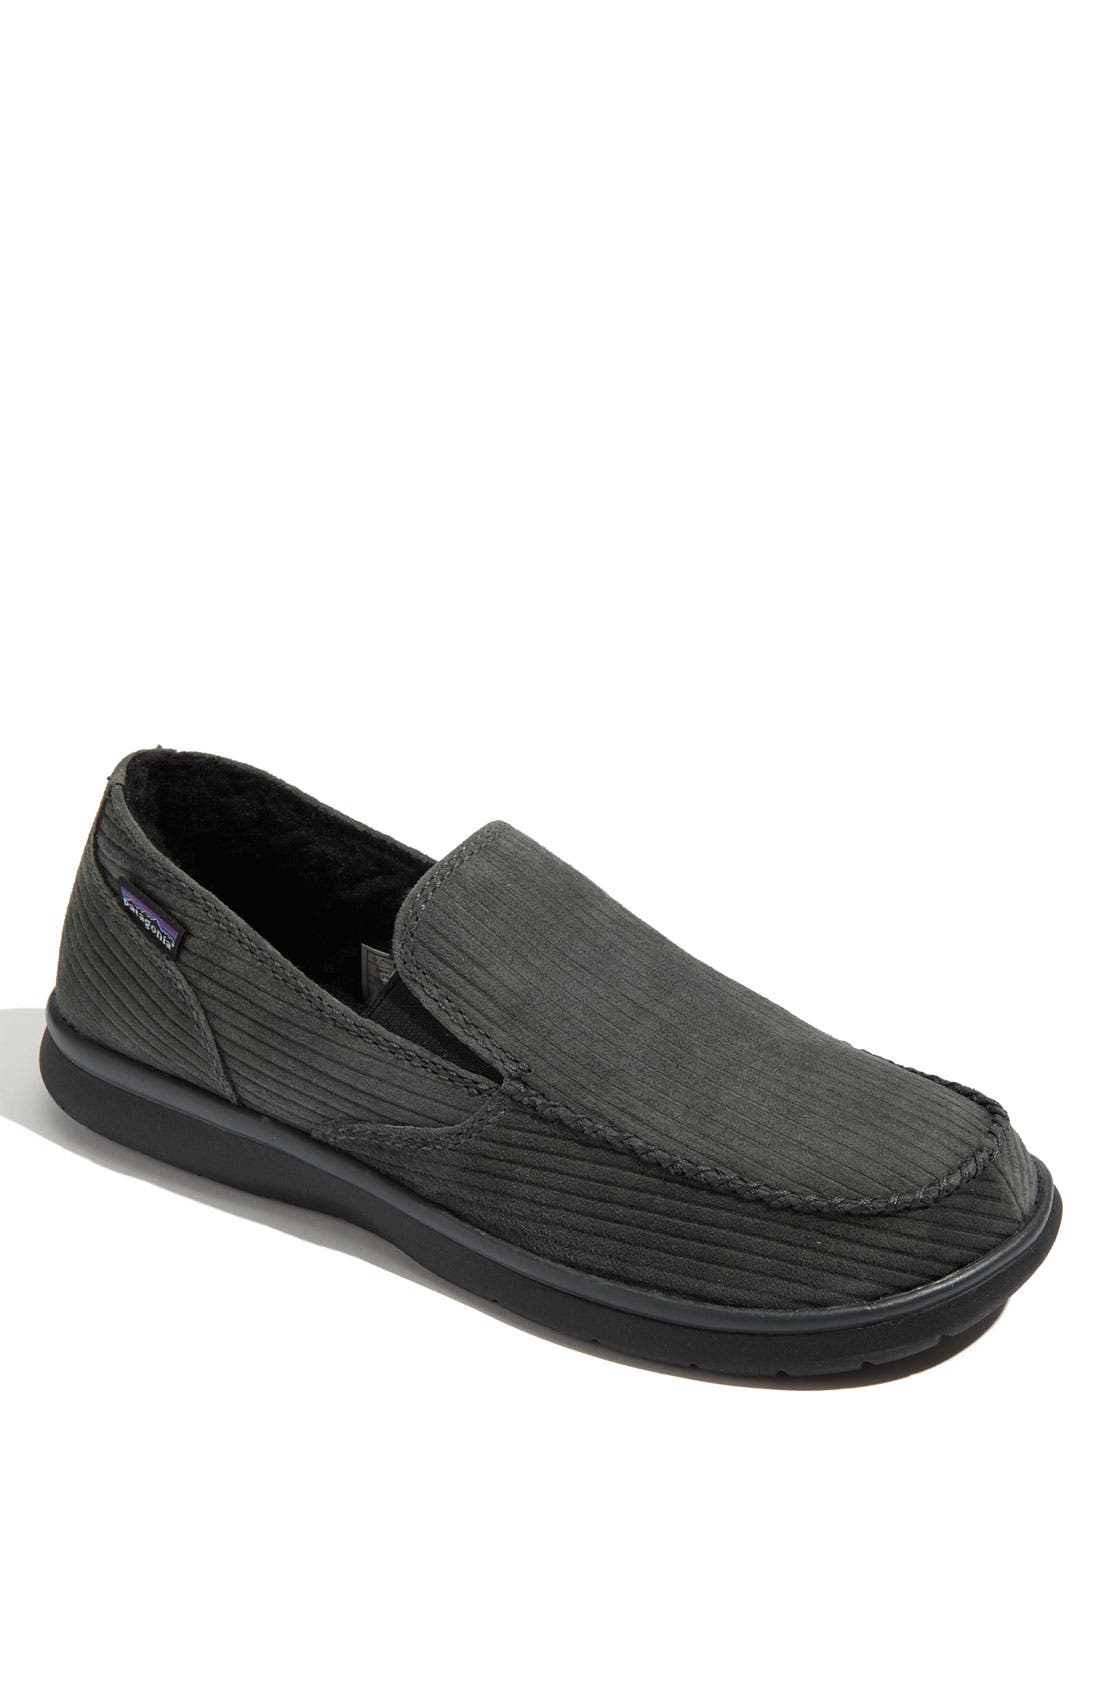 Alternate Image 1 Selected - Patagonia 'Maui Moc' Slip-On (Online Only)